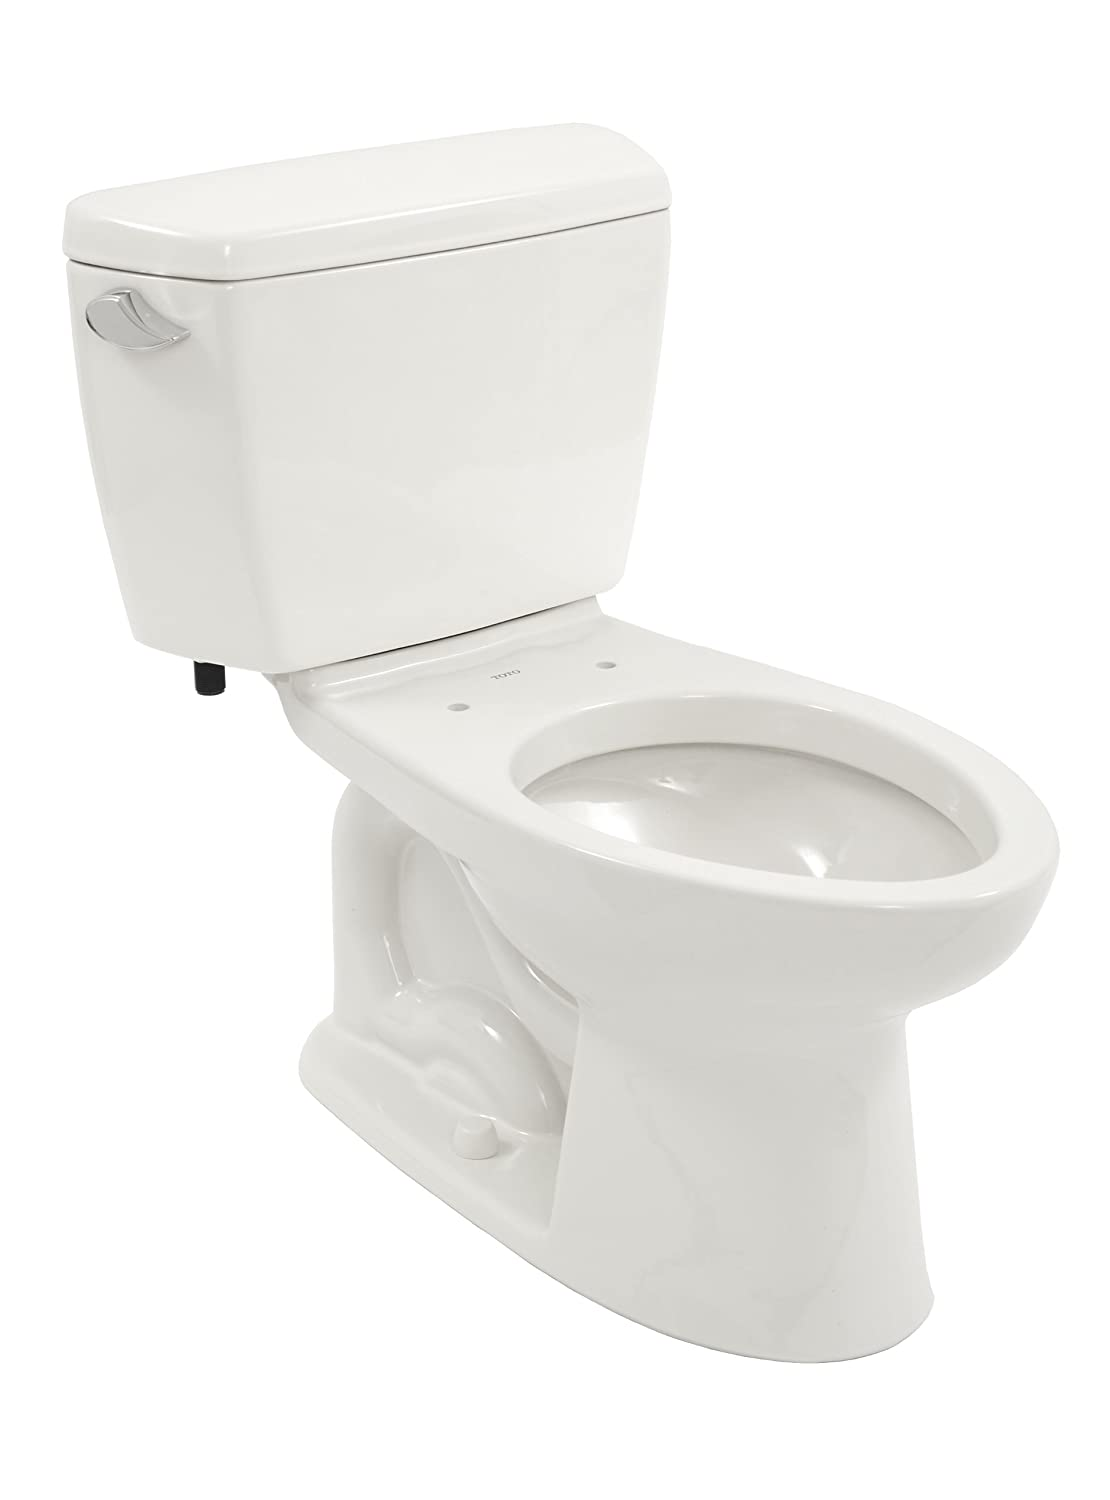 Toto Cst744sg 01 Toilet Review Best Promotion For Sale